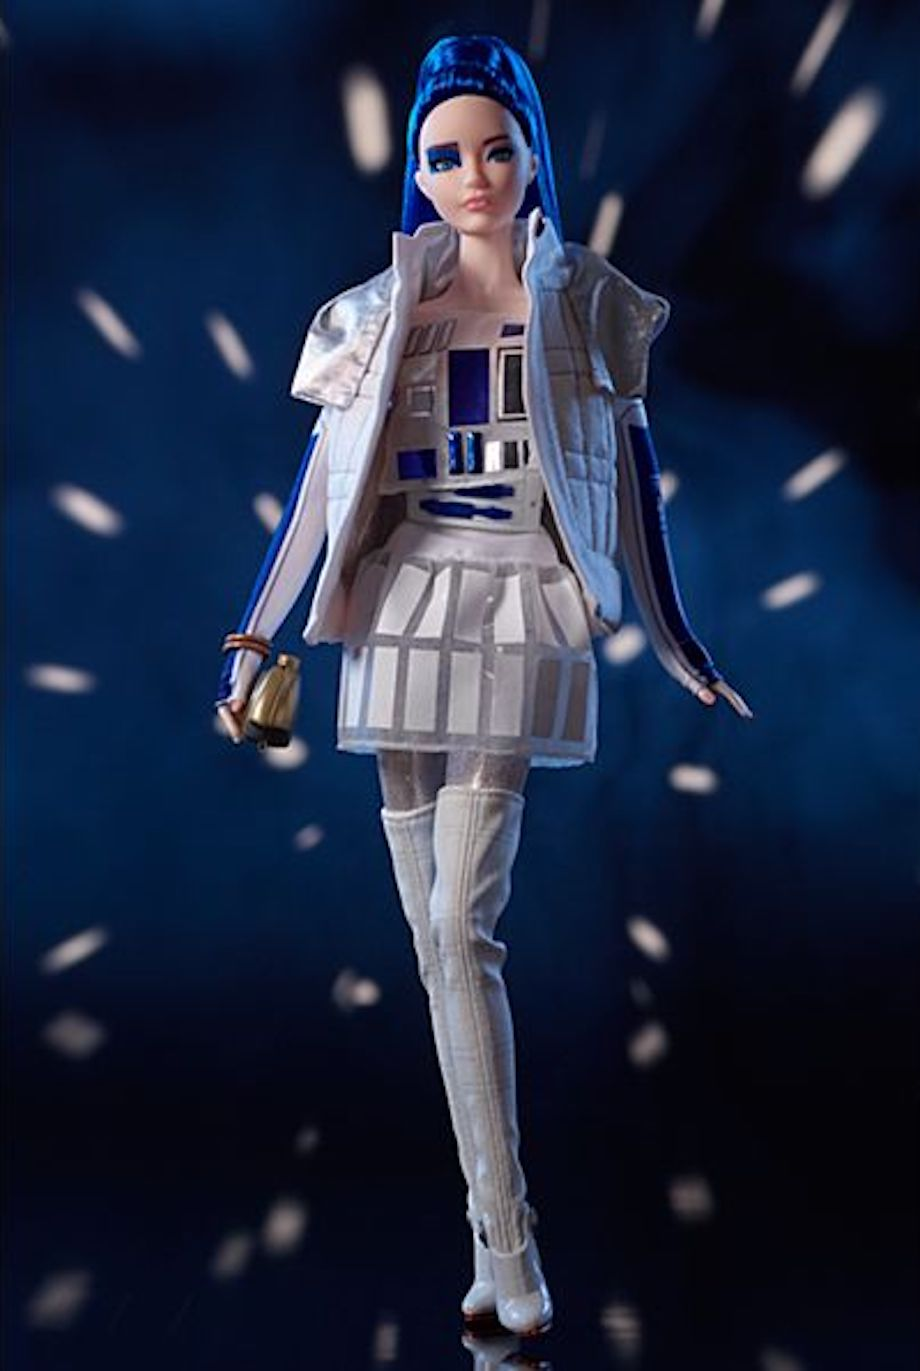 barbie-gets-a-line-of-star-wars-action-figures-that-shows-off-new-fashion-for-darth-vader-r2-d2-and-princess-leia3